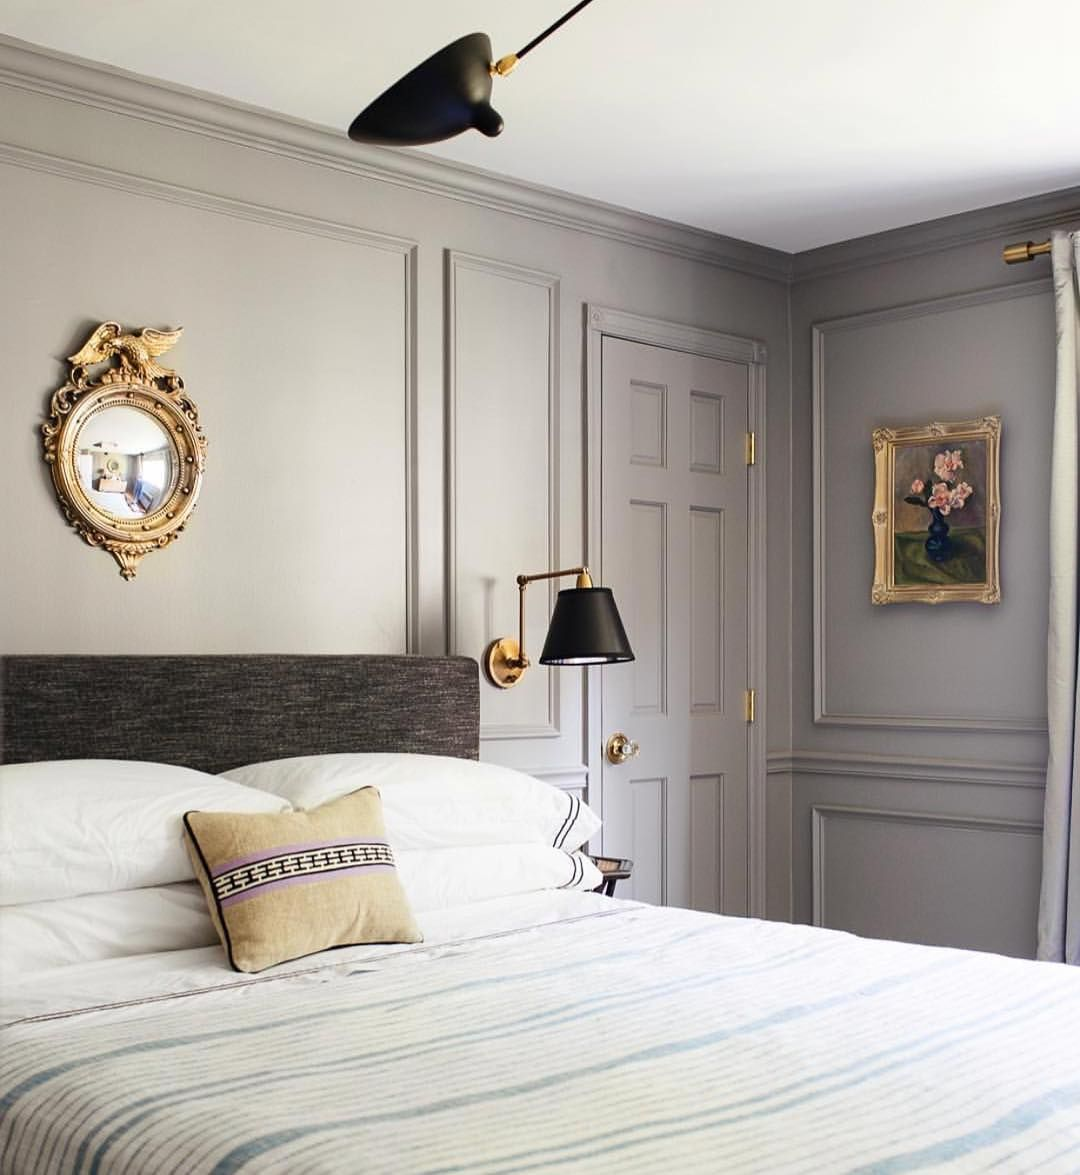 Decor Tip Do away with accent colors. Paint molding